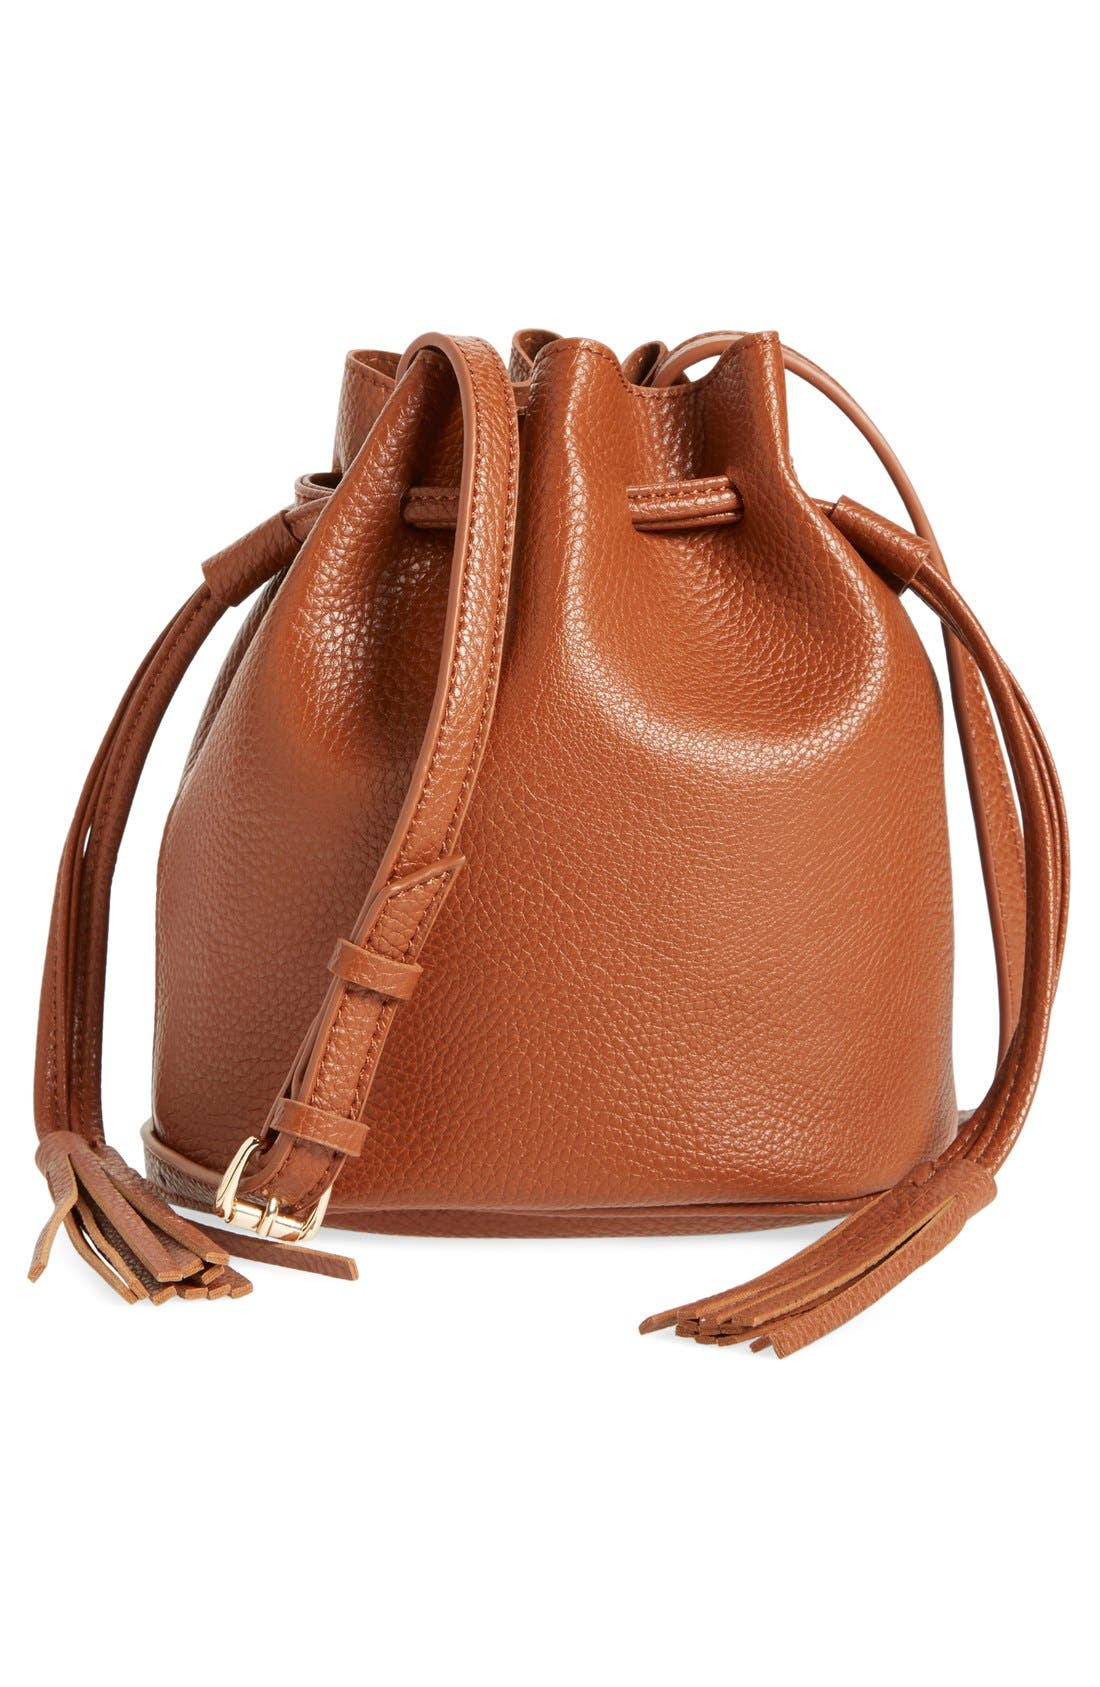 Alternate Image 1 Selected - Street Level Mini Faux Leather Tassel Bucket Bag